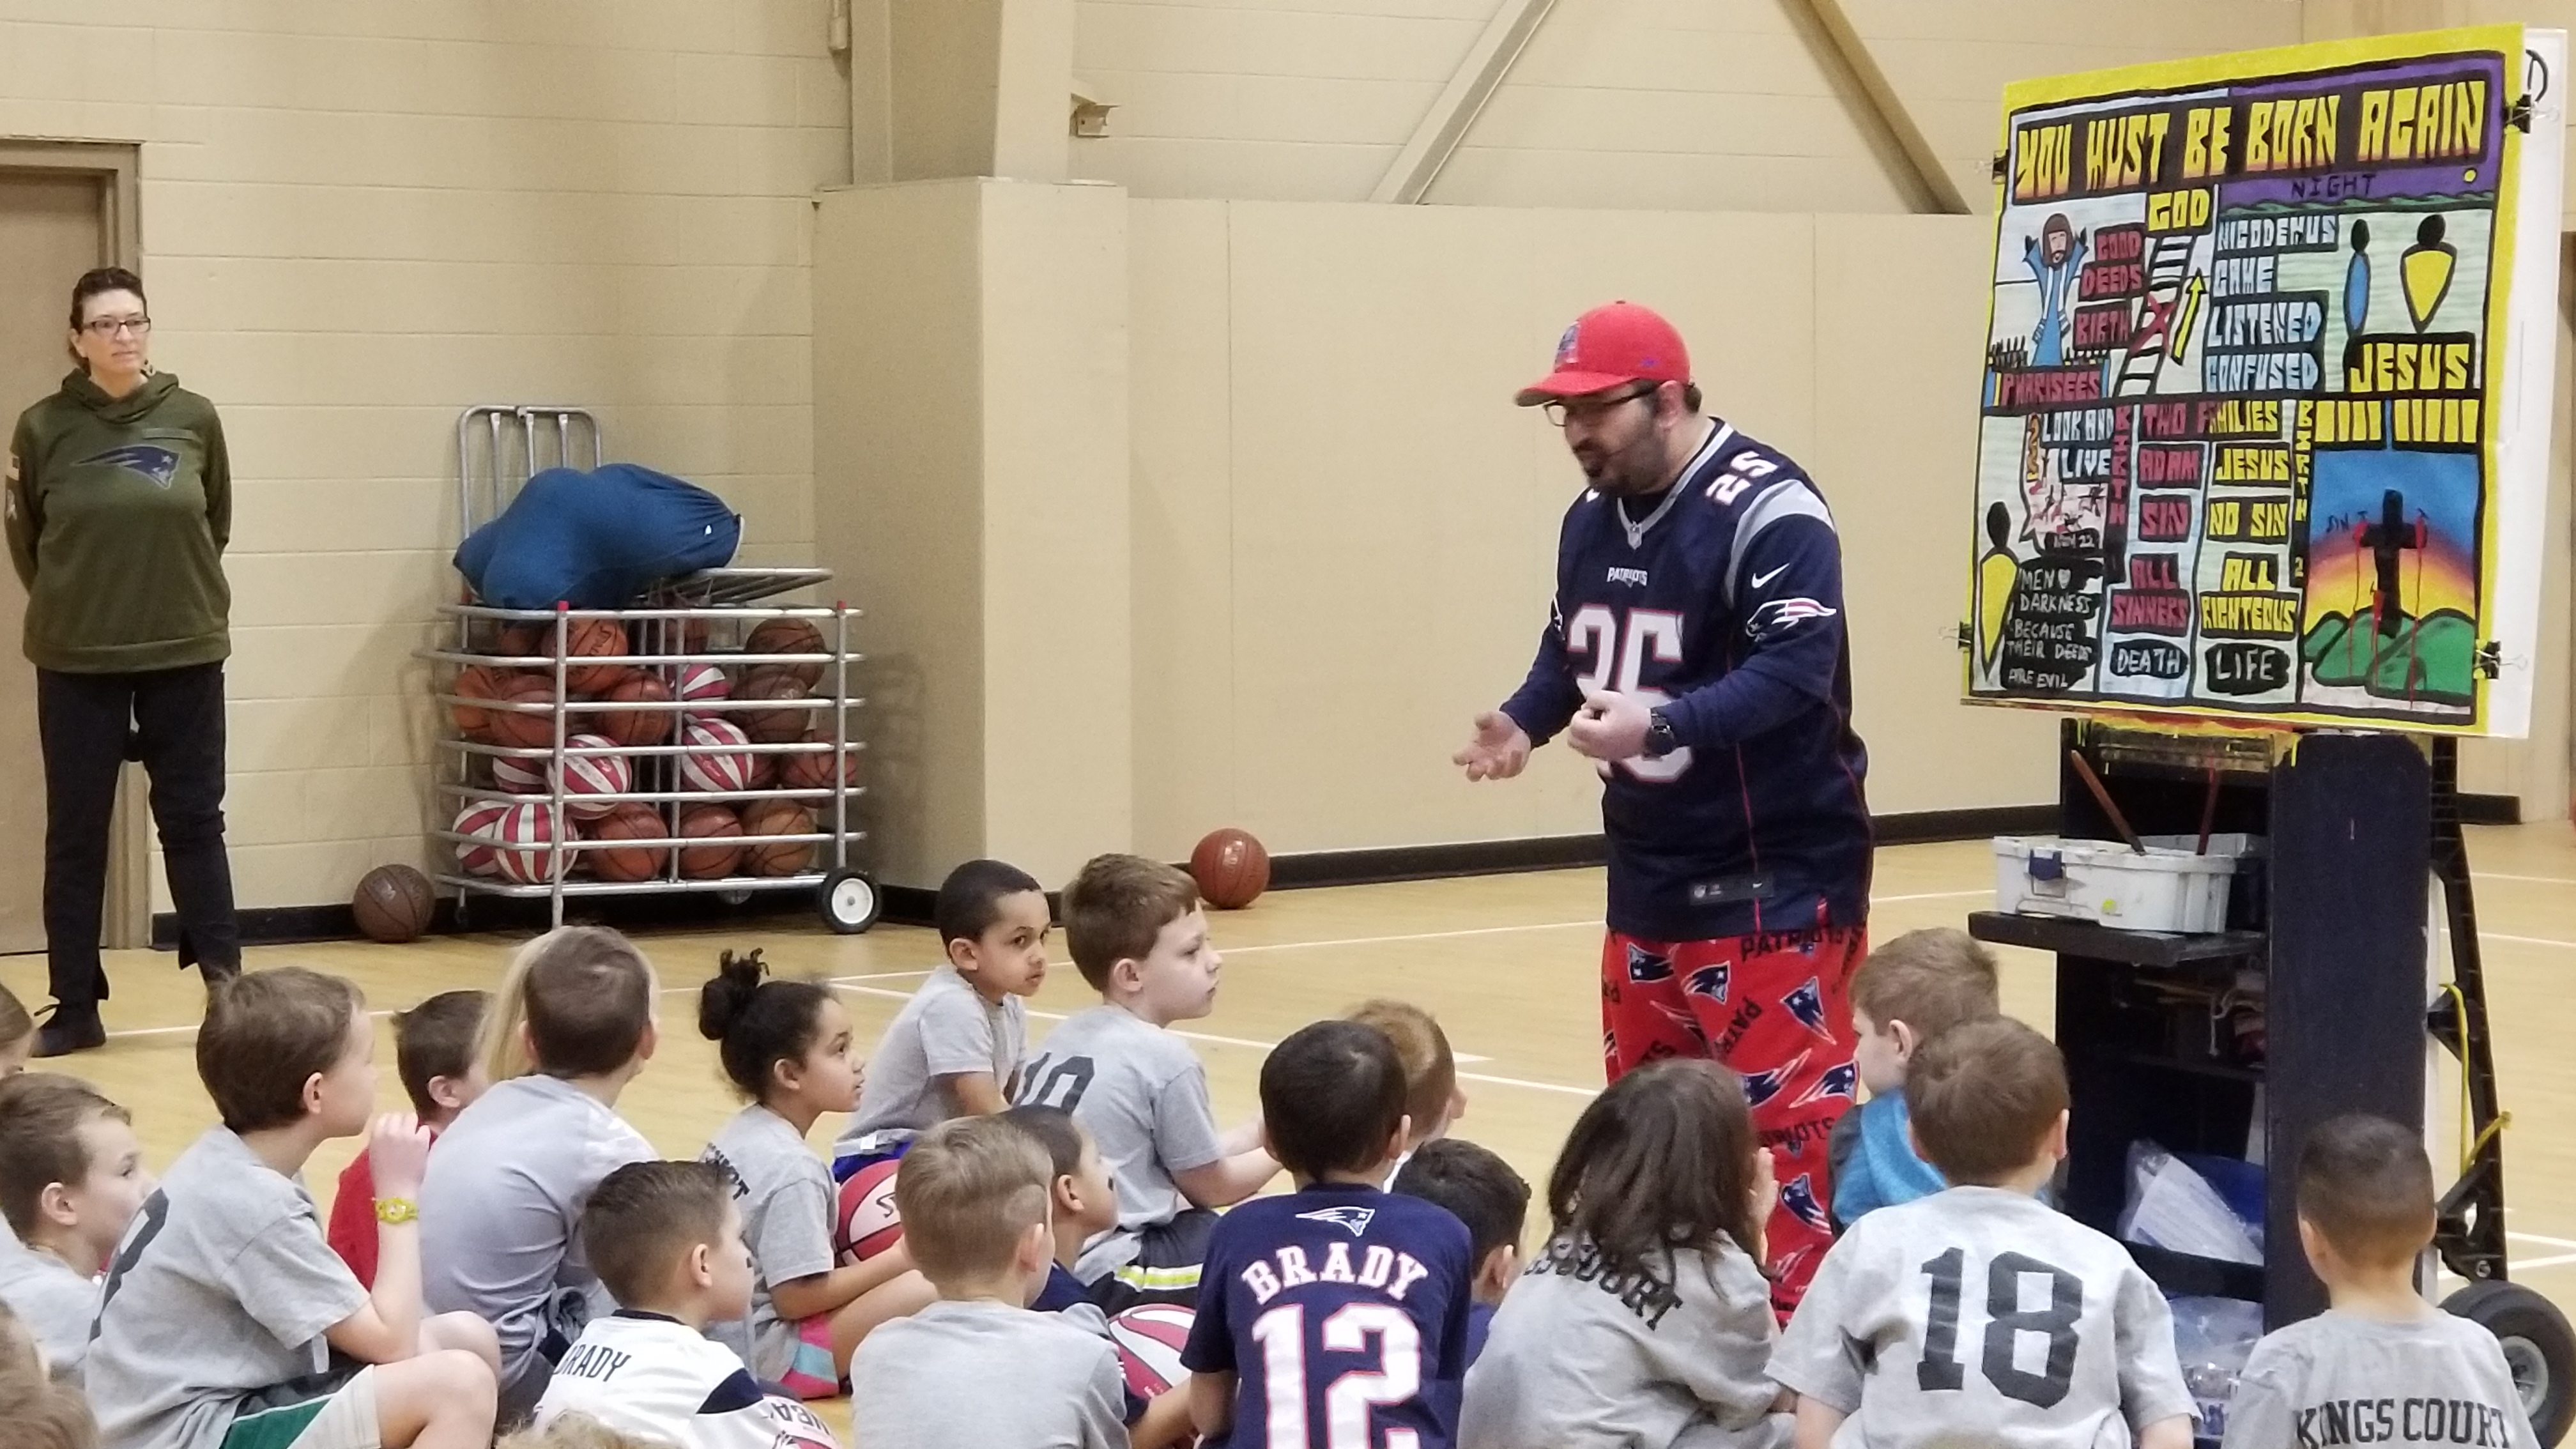 The 4th and final week was the day before the Superbowl, so everyone was encouraged to wear Patriots clothes. That's why I'm dressed like that! :)